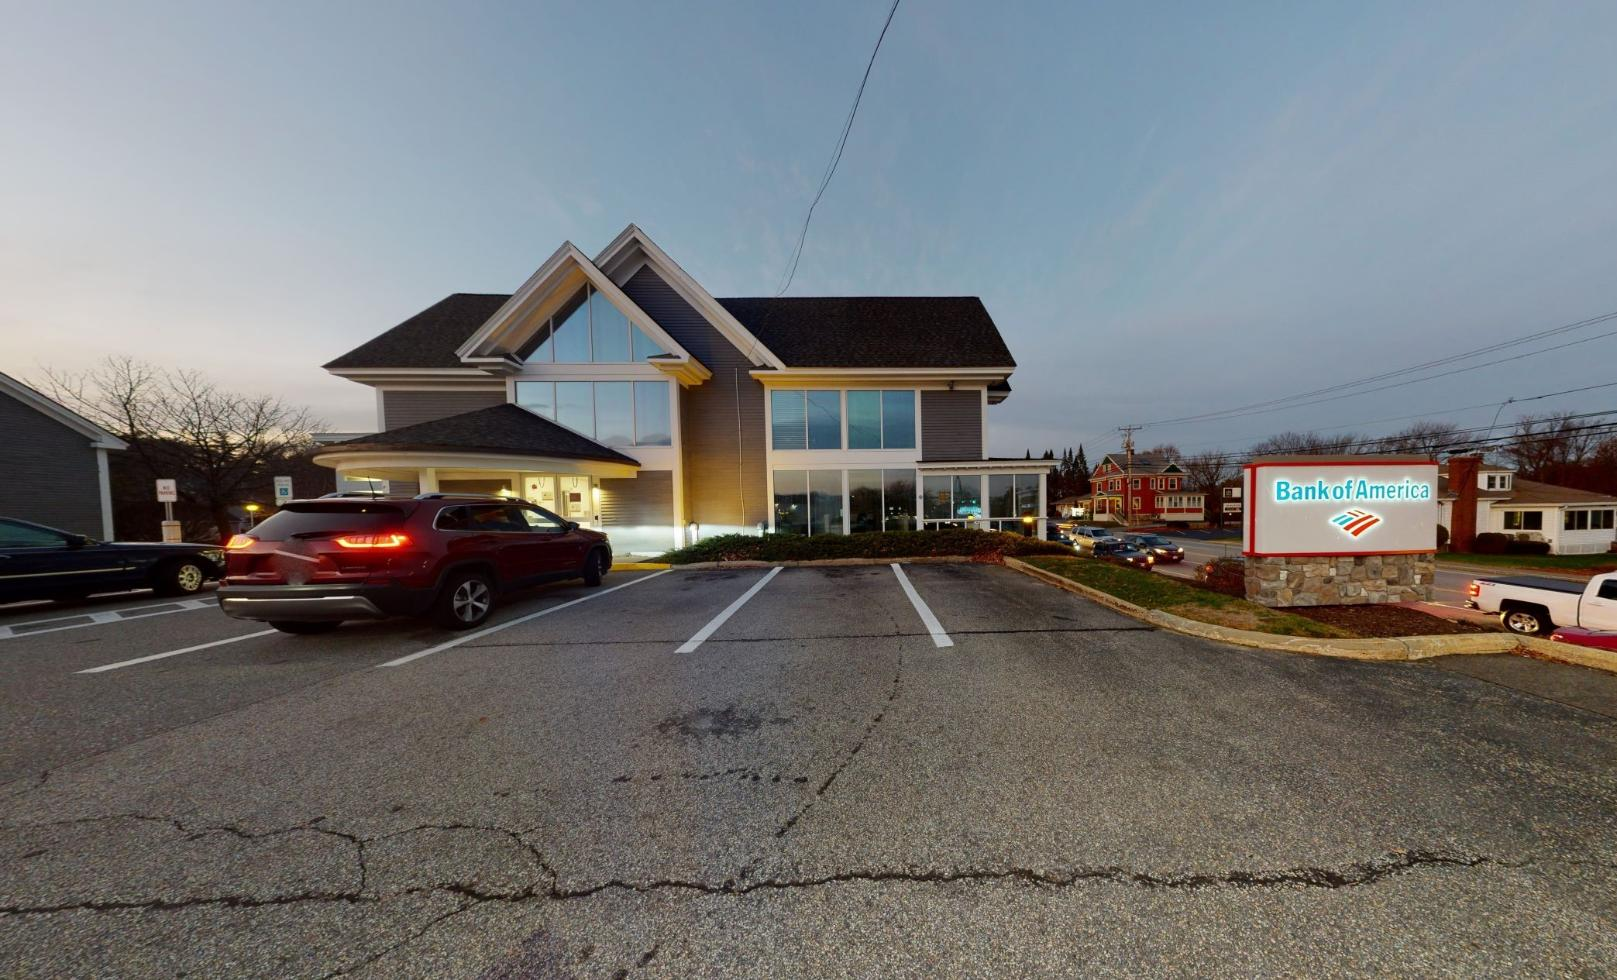 Bank of America financial center with drive-thru ATM   46 S River Rd, Bedford, NH 03110